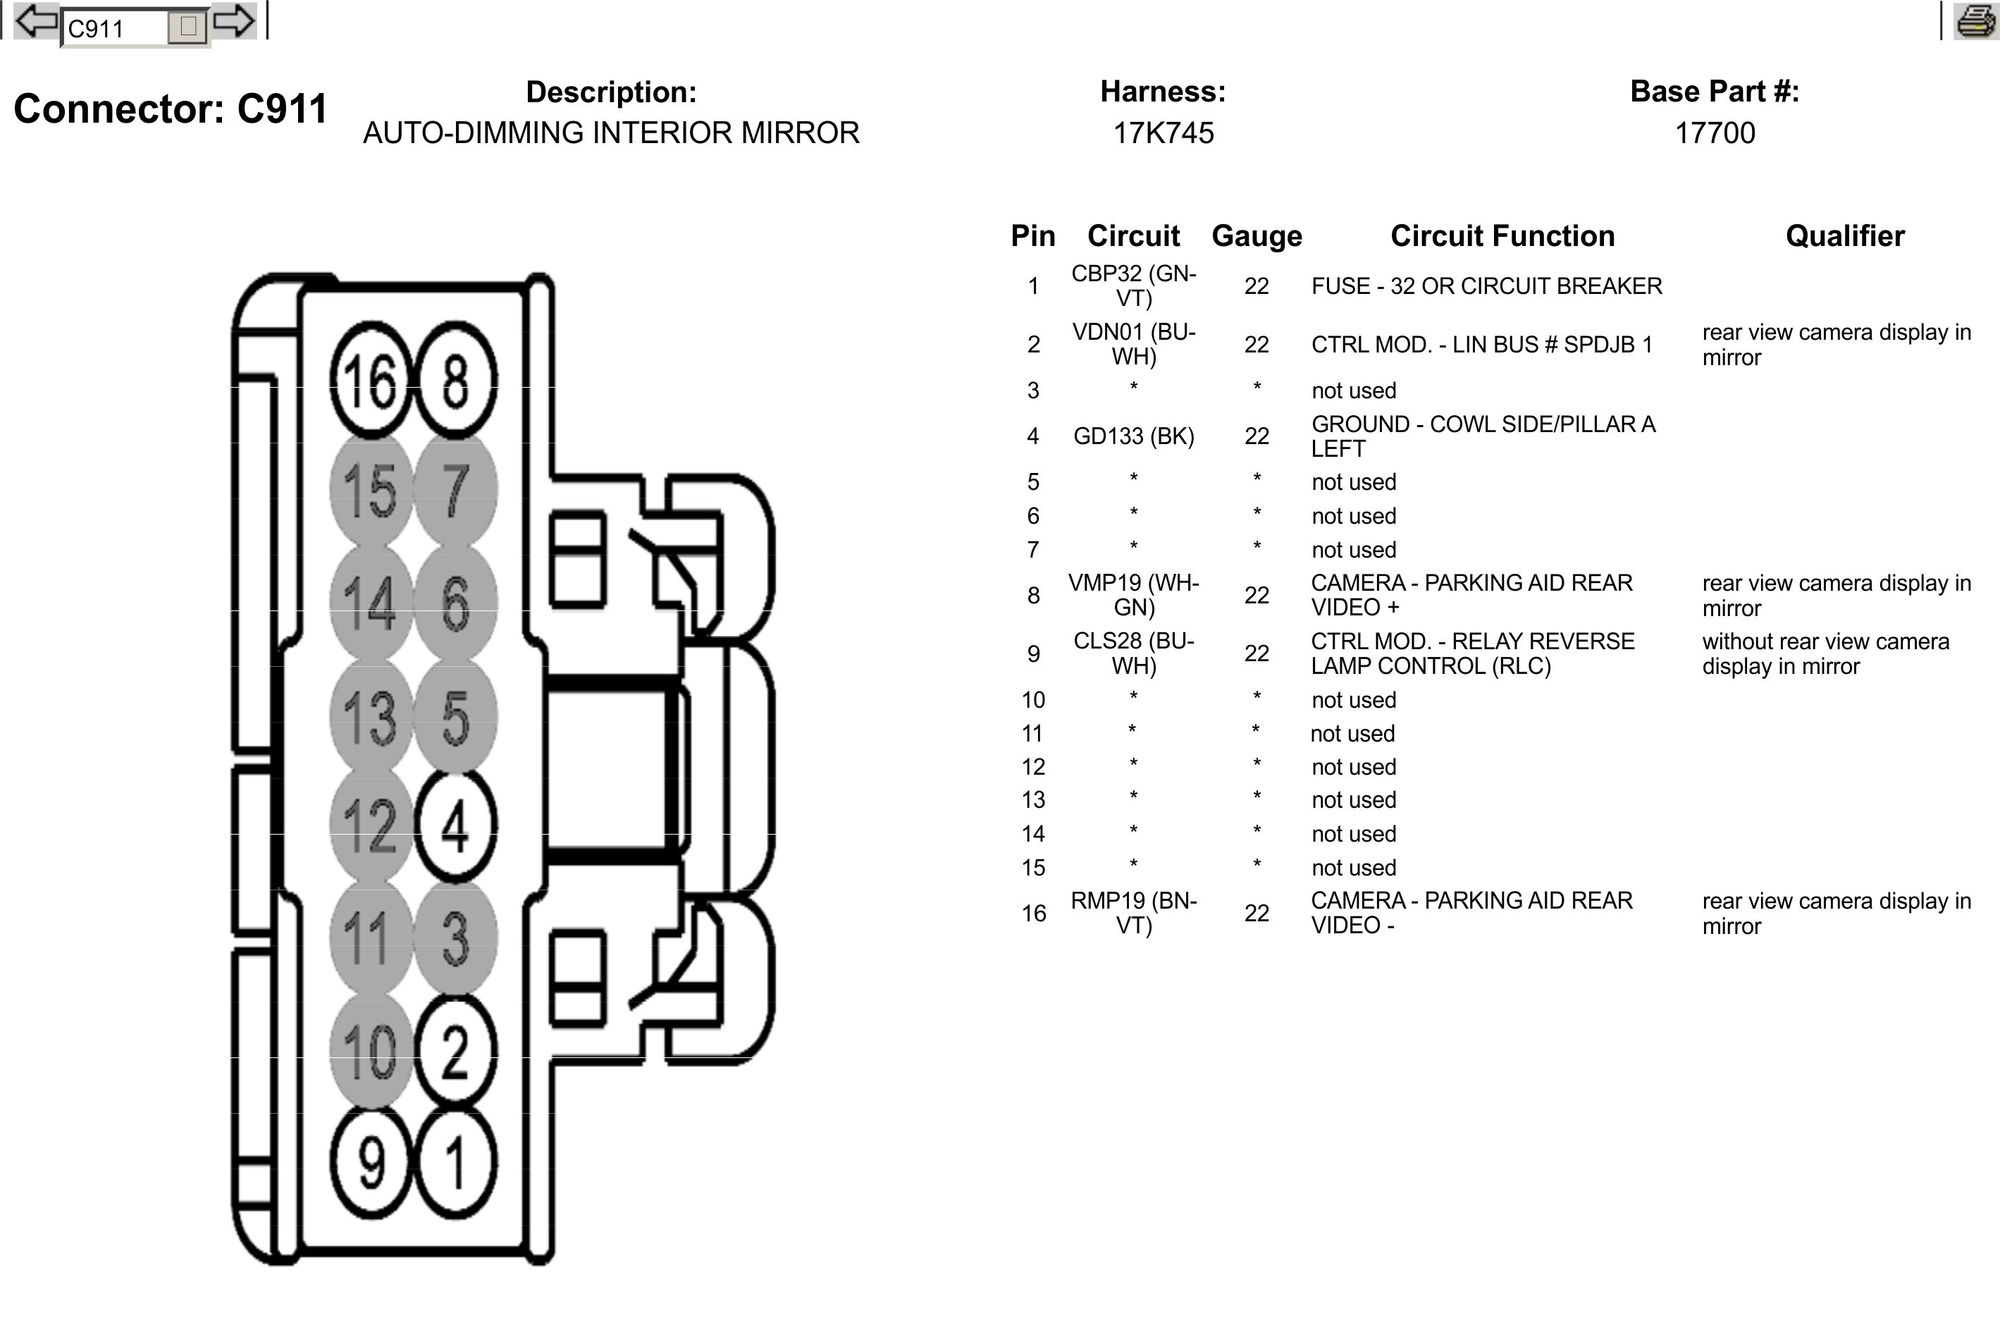 Need Wiring Pinout For 2012 Lariat Rear